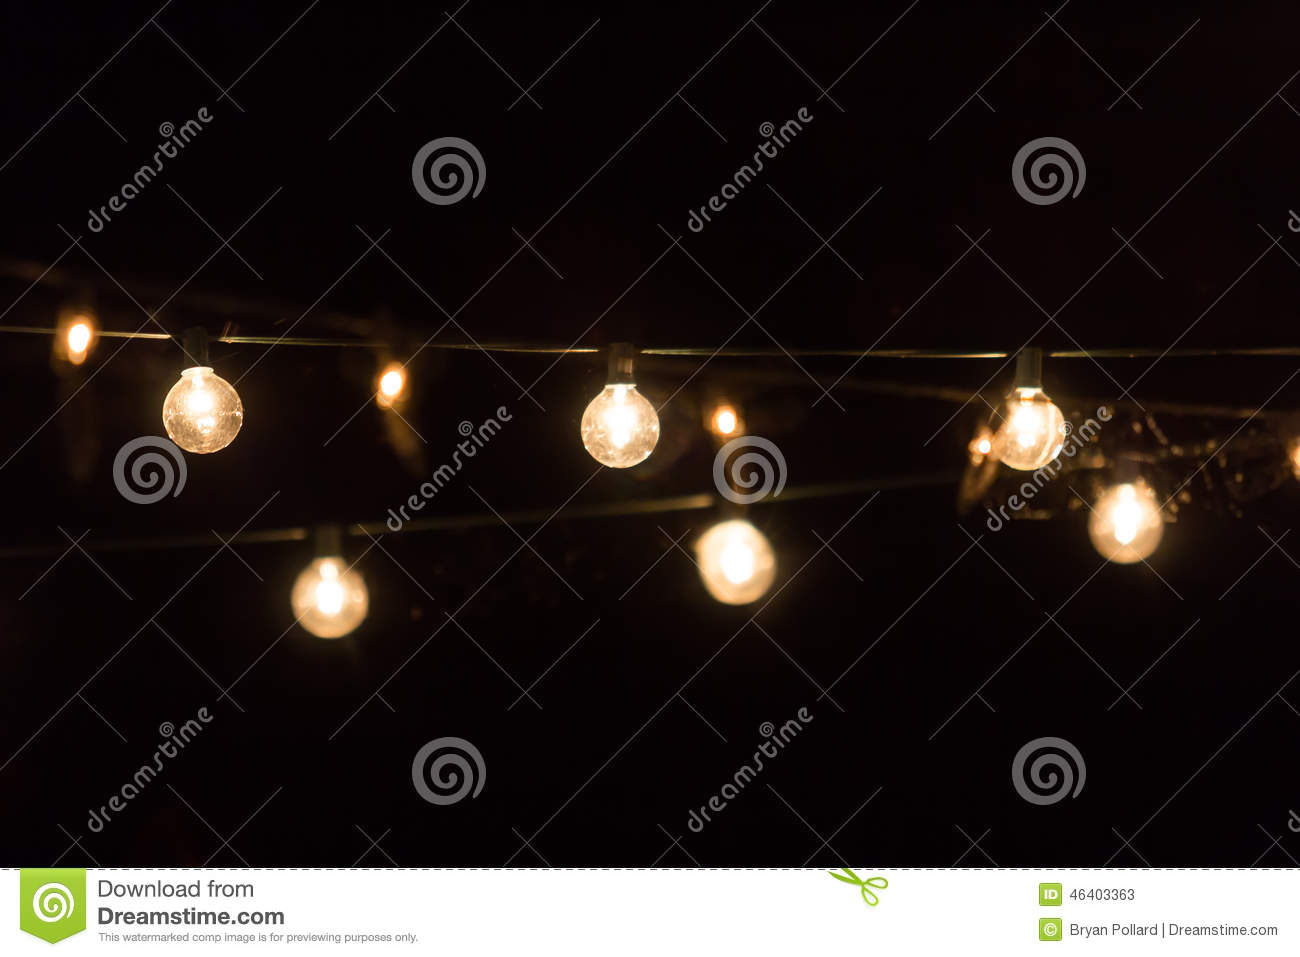 Party Lights Stock Photo - Image: 46403363